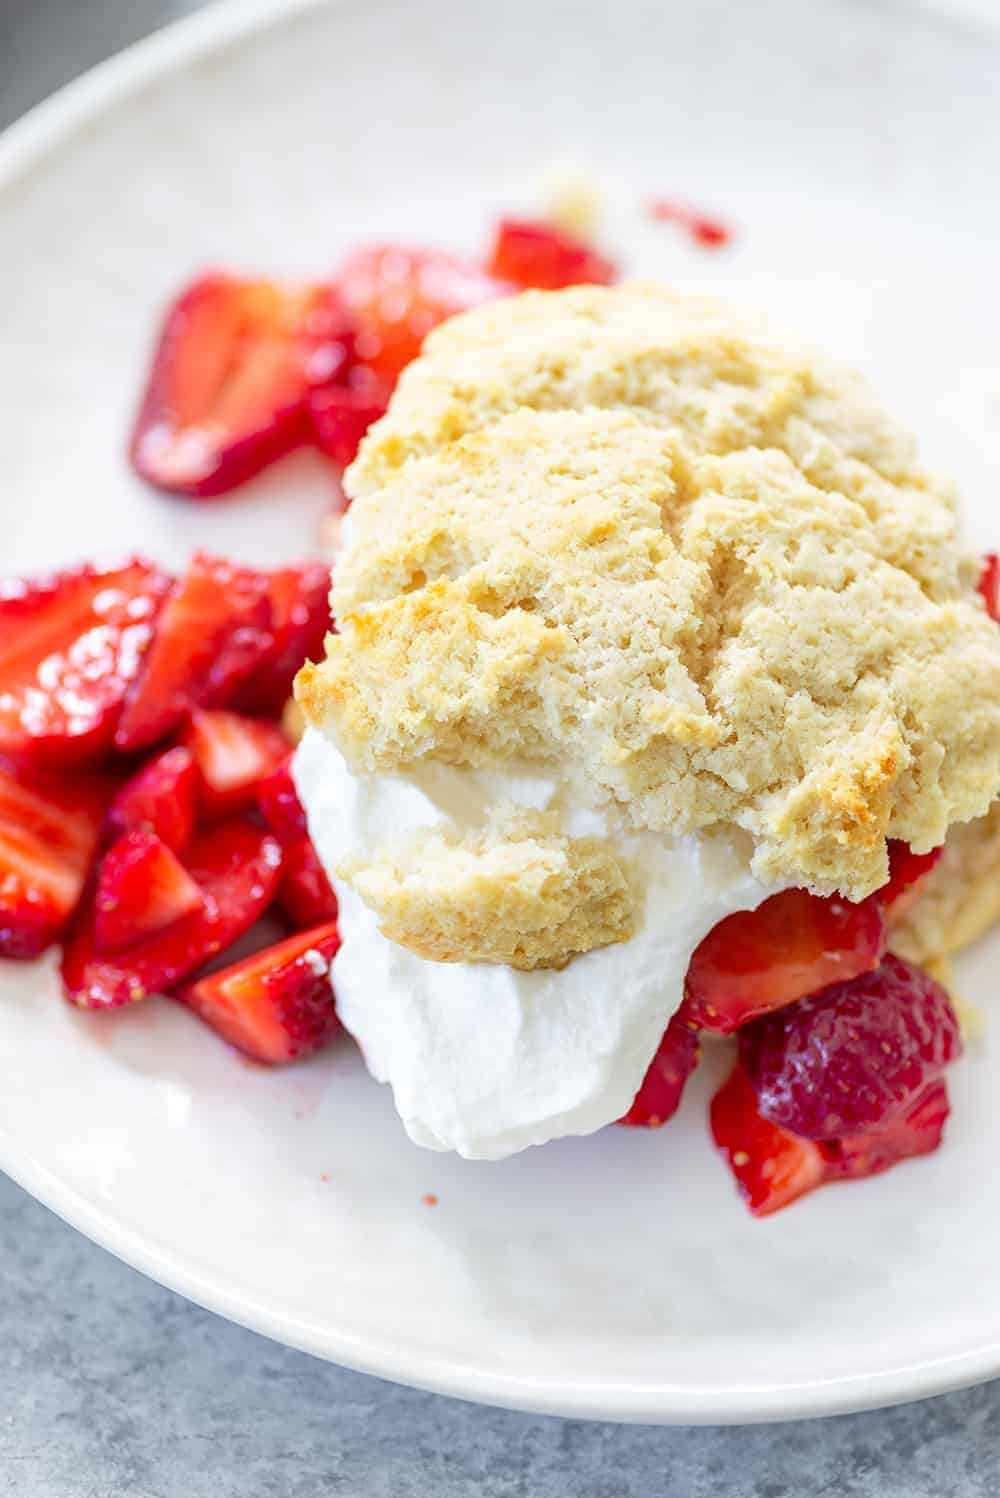 Vegan Strawberry Shortcake with Coconut Cream